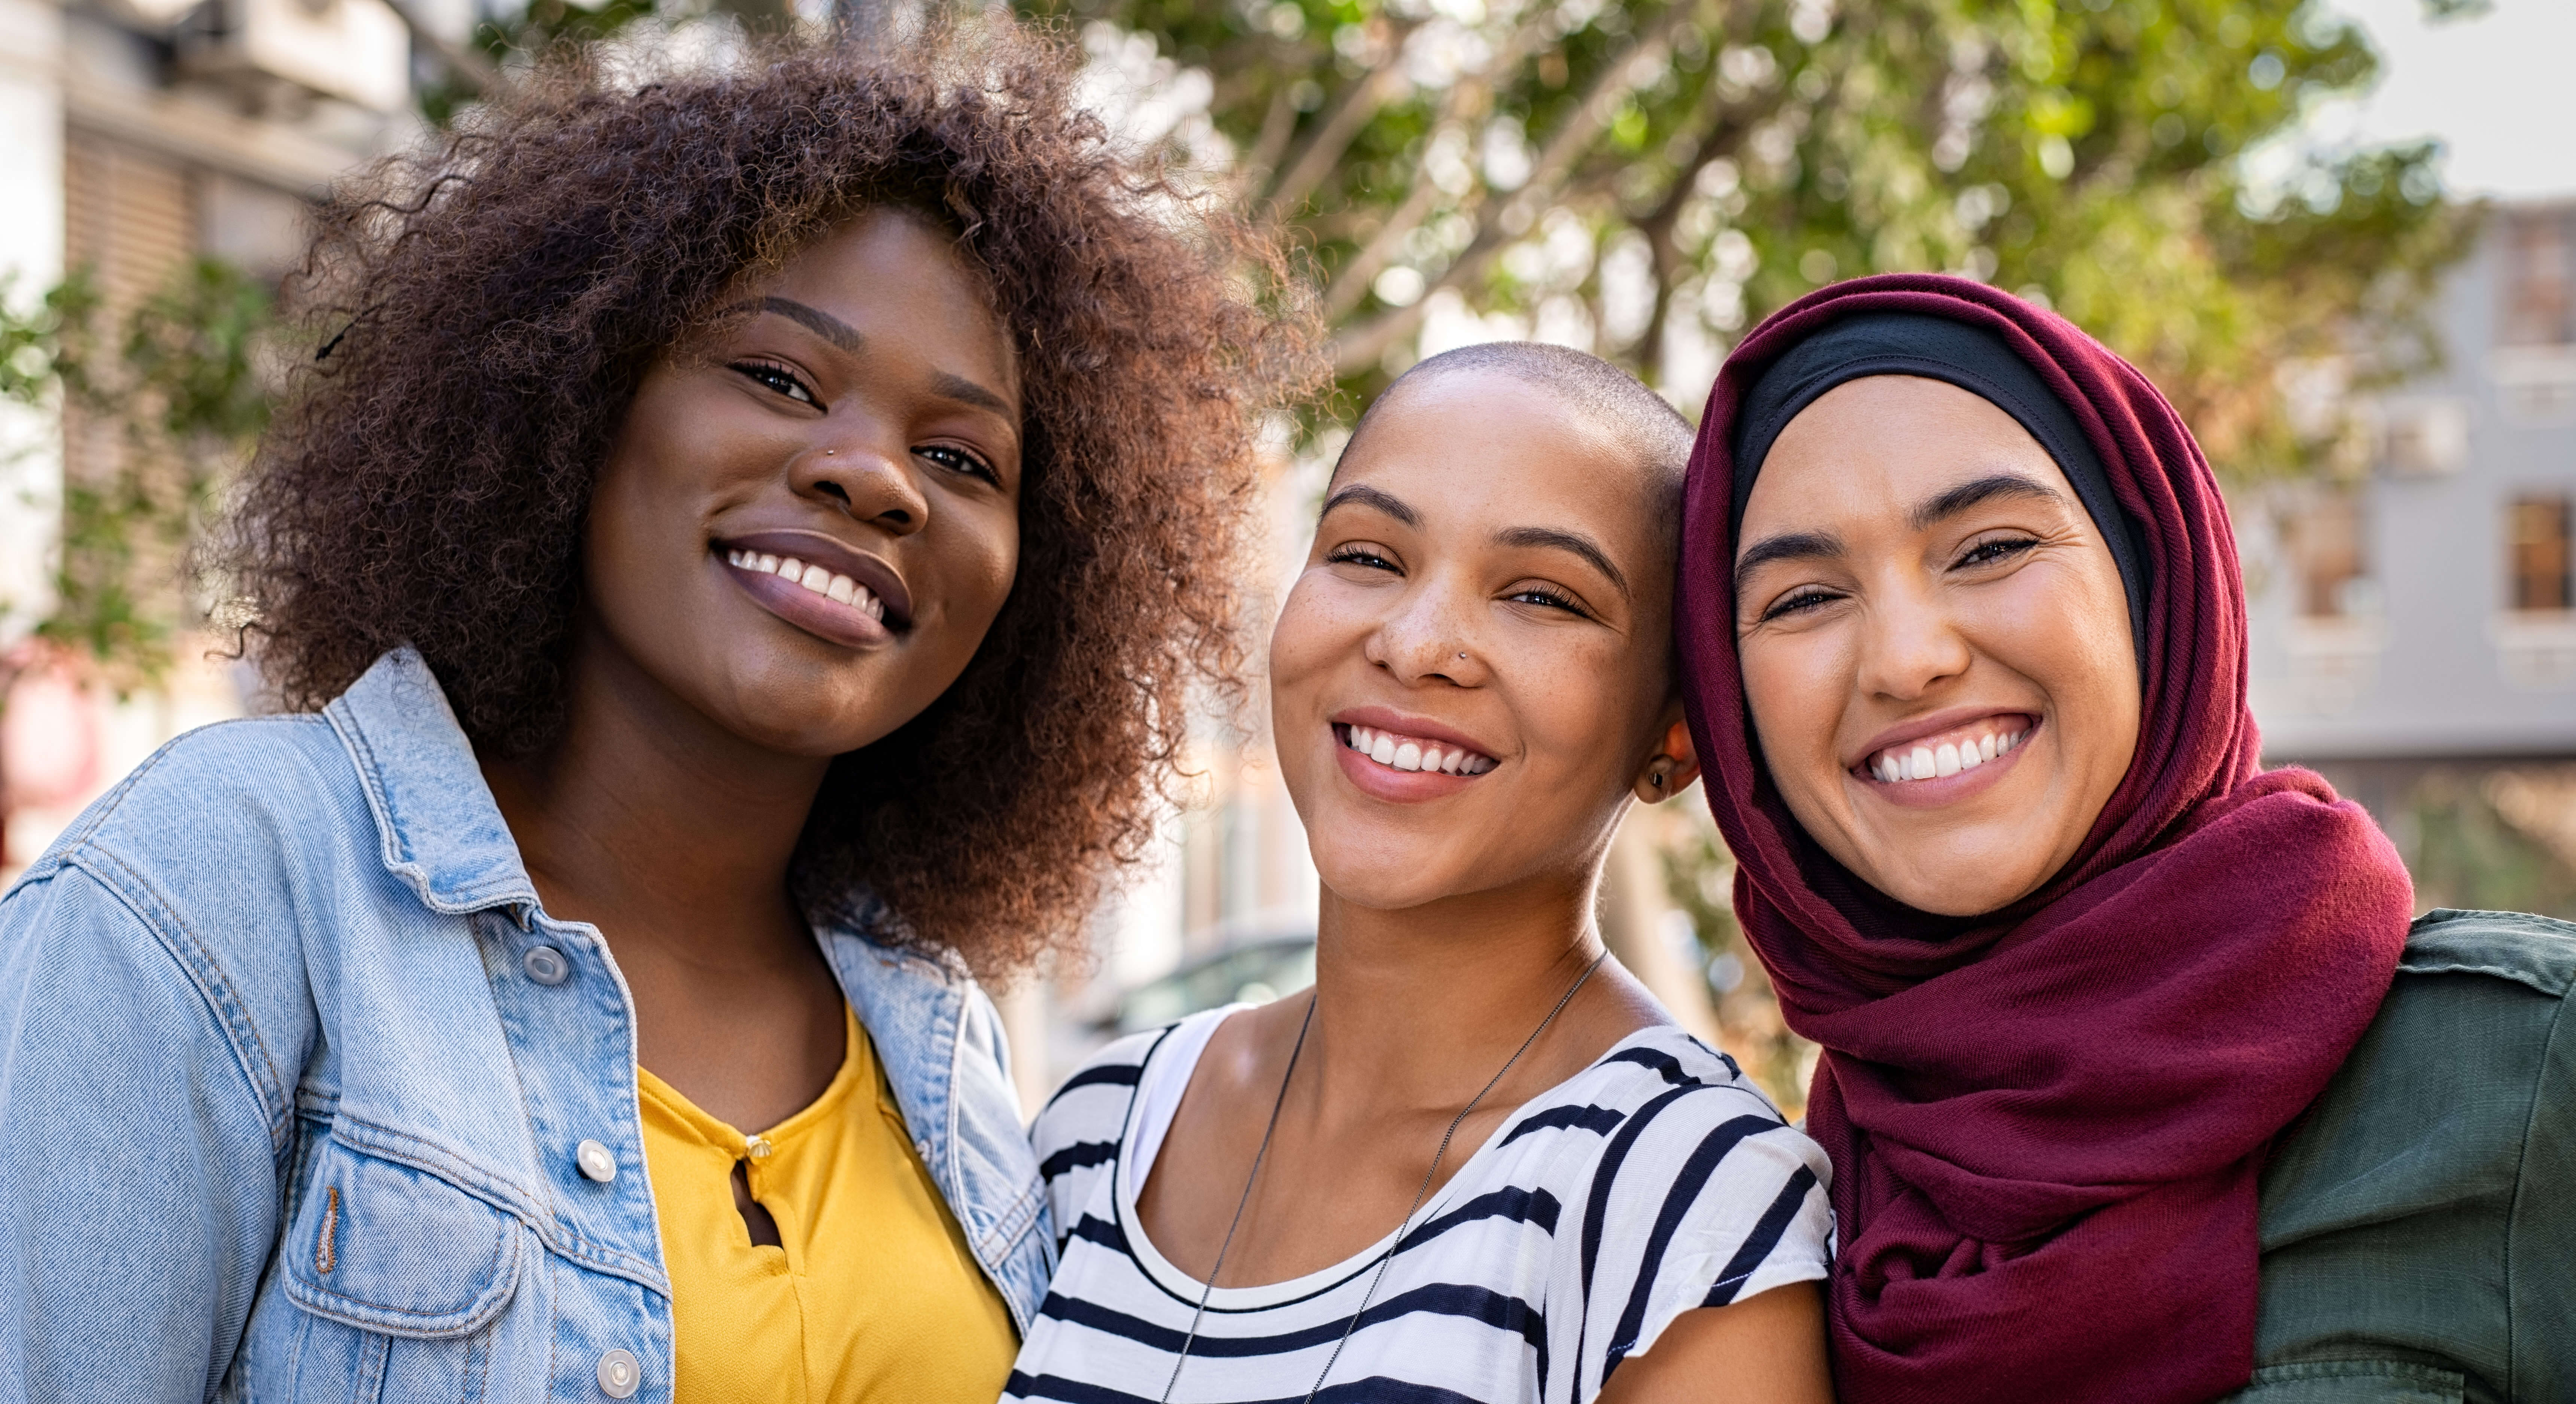 three happy multiethnic young women smiling and looking a the camera